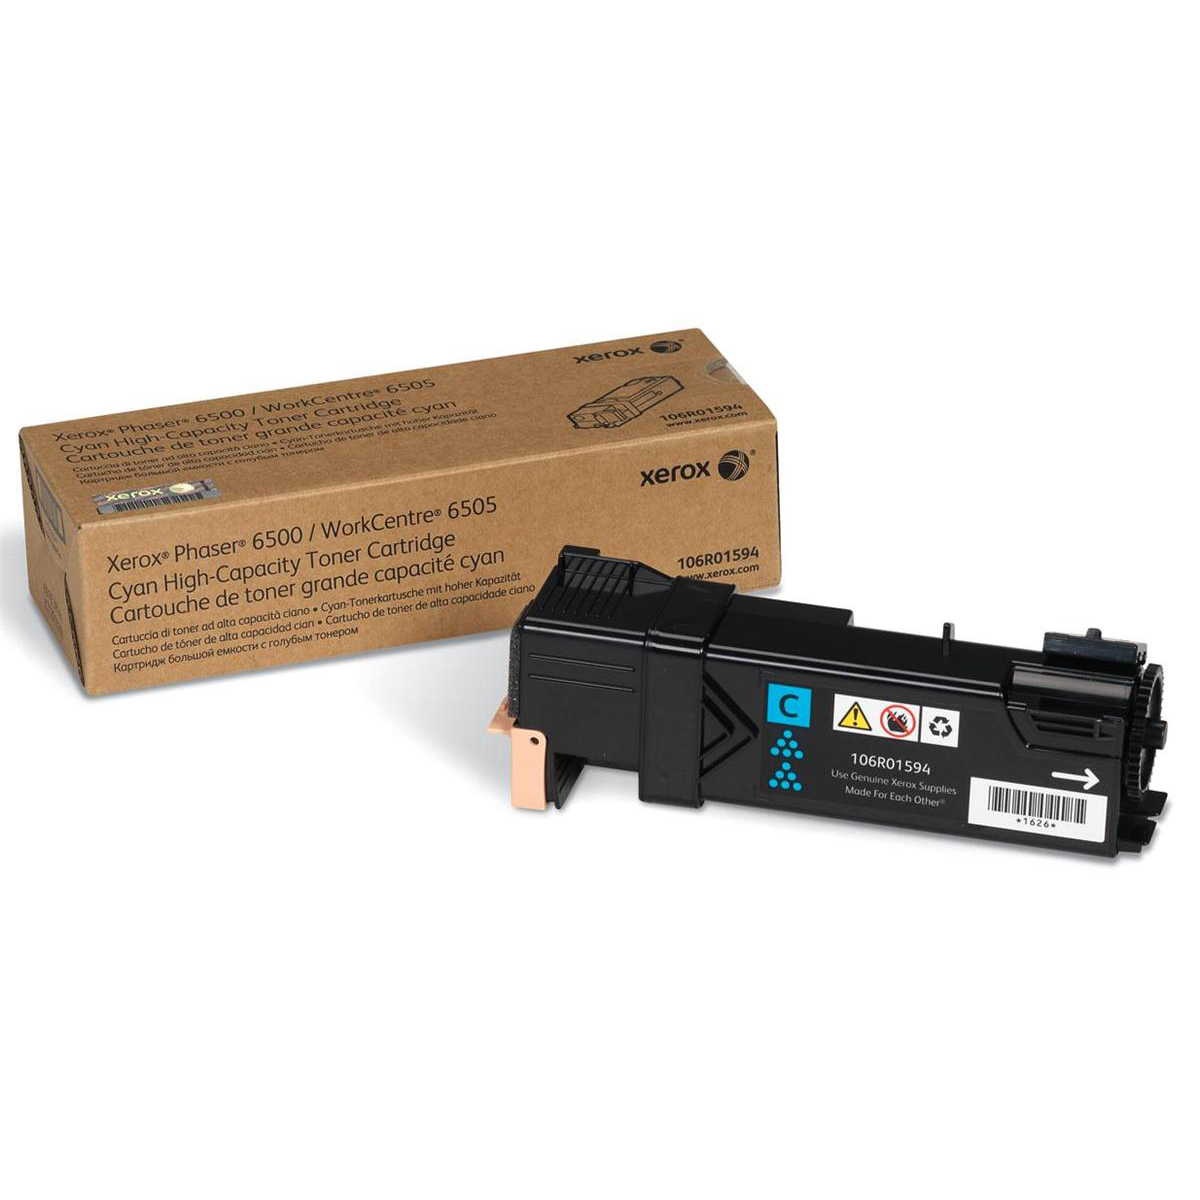 Xerox Phaser 6500 Laser Toner Cartridge High Yield Page Life 2500pp Cyan Ref 106R01594